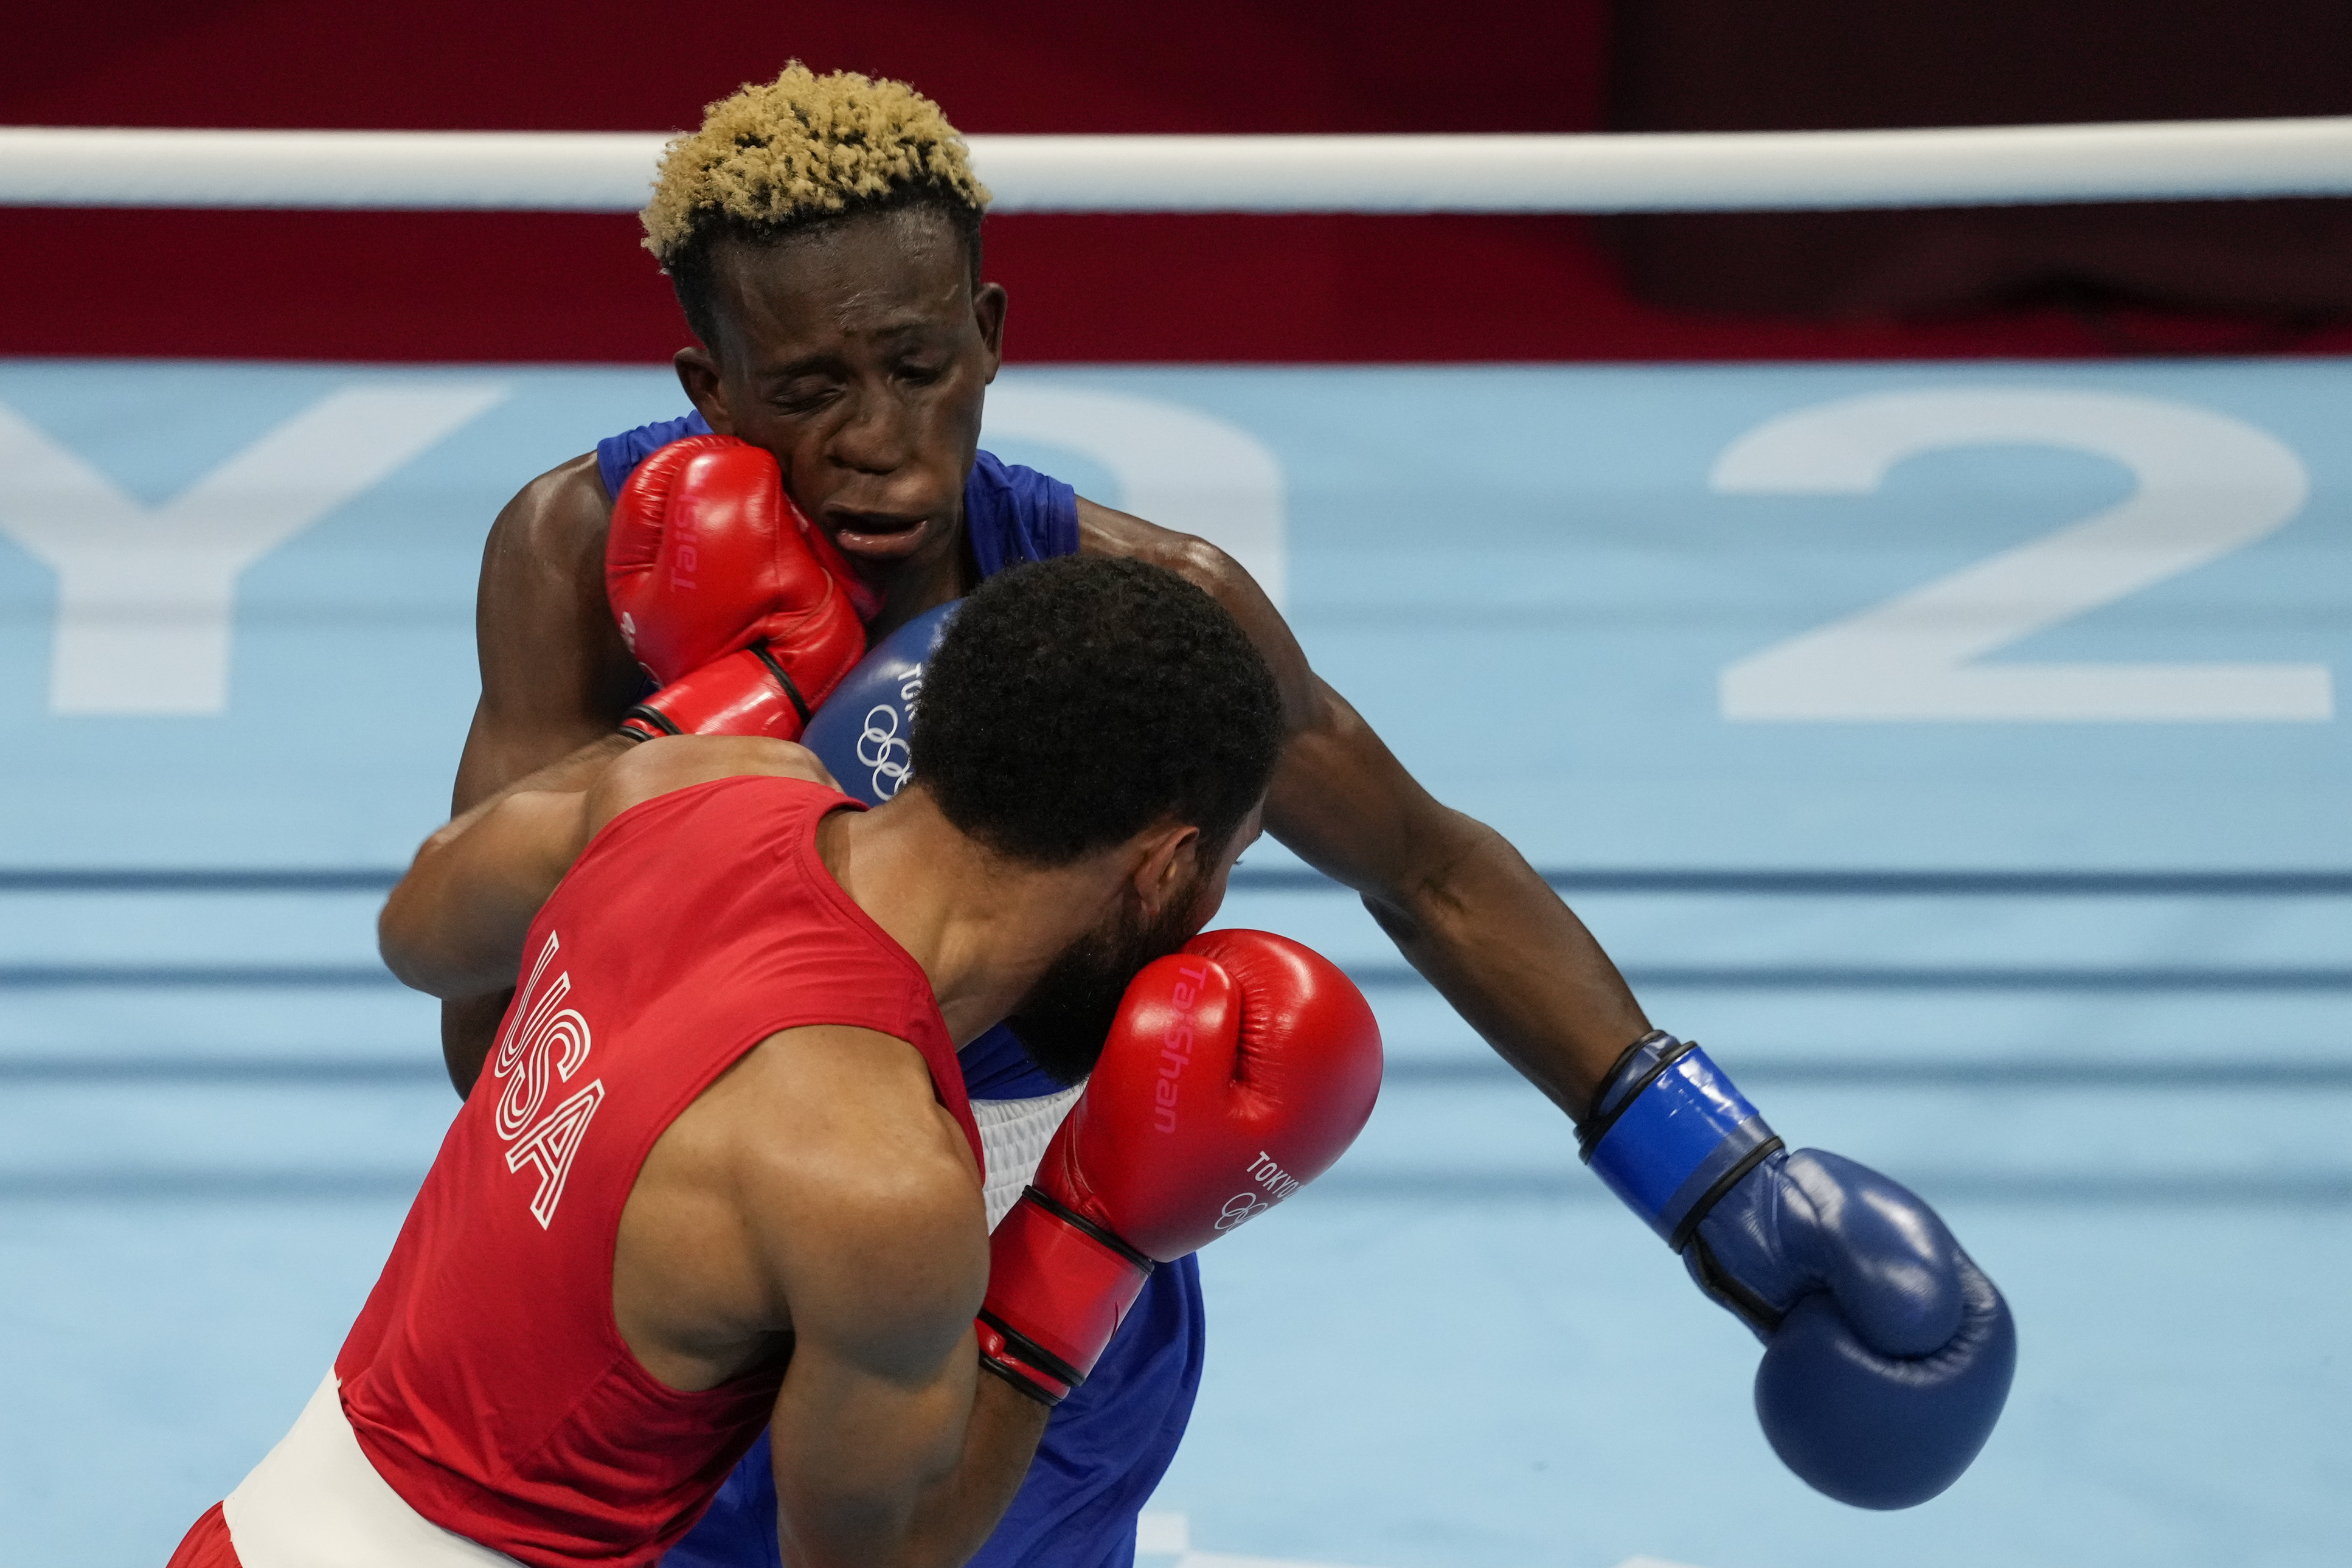 Duke Ragan (USA) in red and Samuel Takyi (GHA) in blue fight in their semifinal Men's Featherweight class during the Tokyo 2020 Olympic Summer Games at Kokugikan Arena.